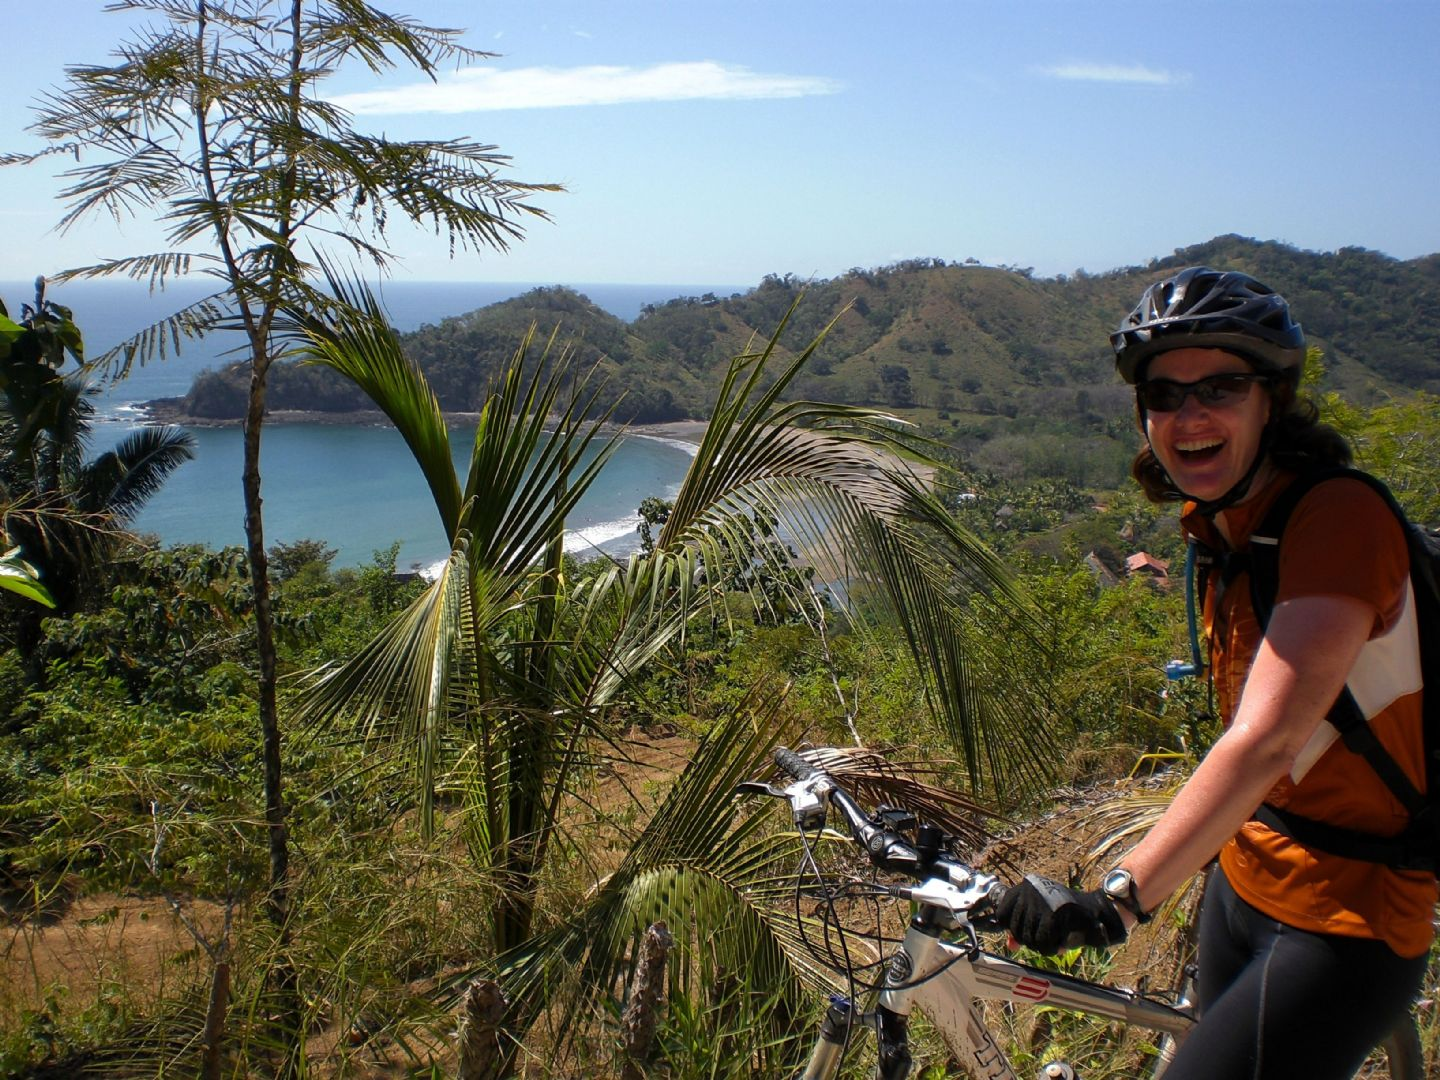 Costa Rica - Volcanes y Playas - Cycling Adventures